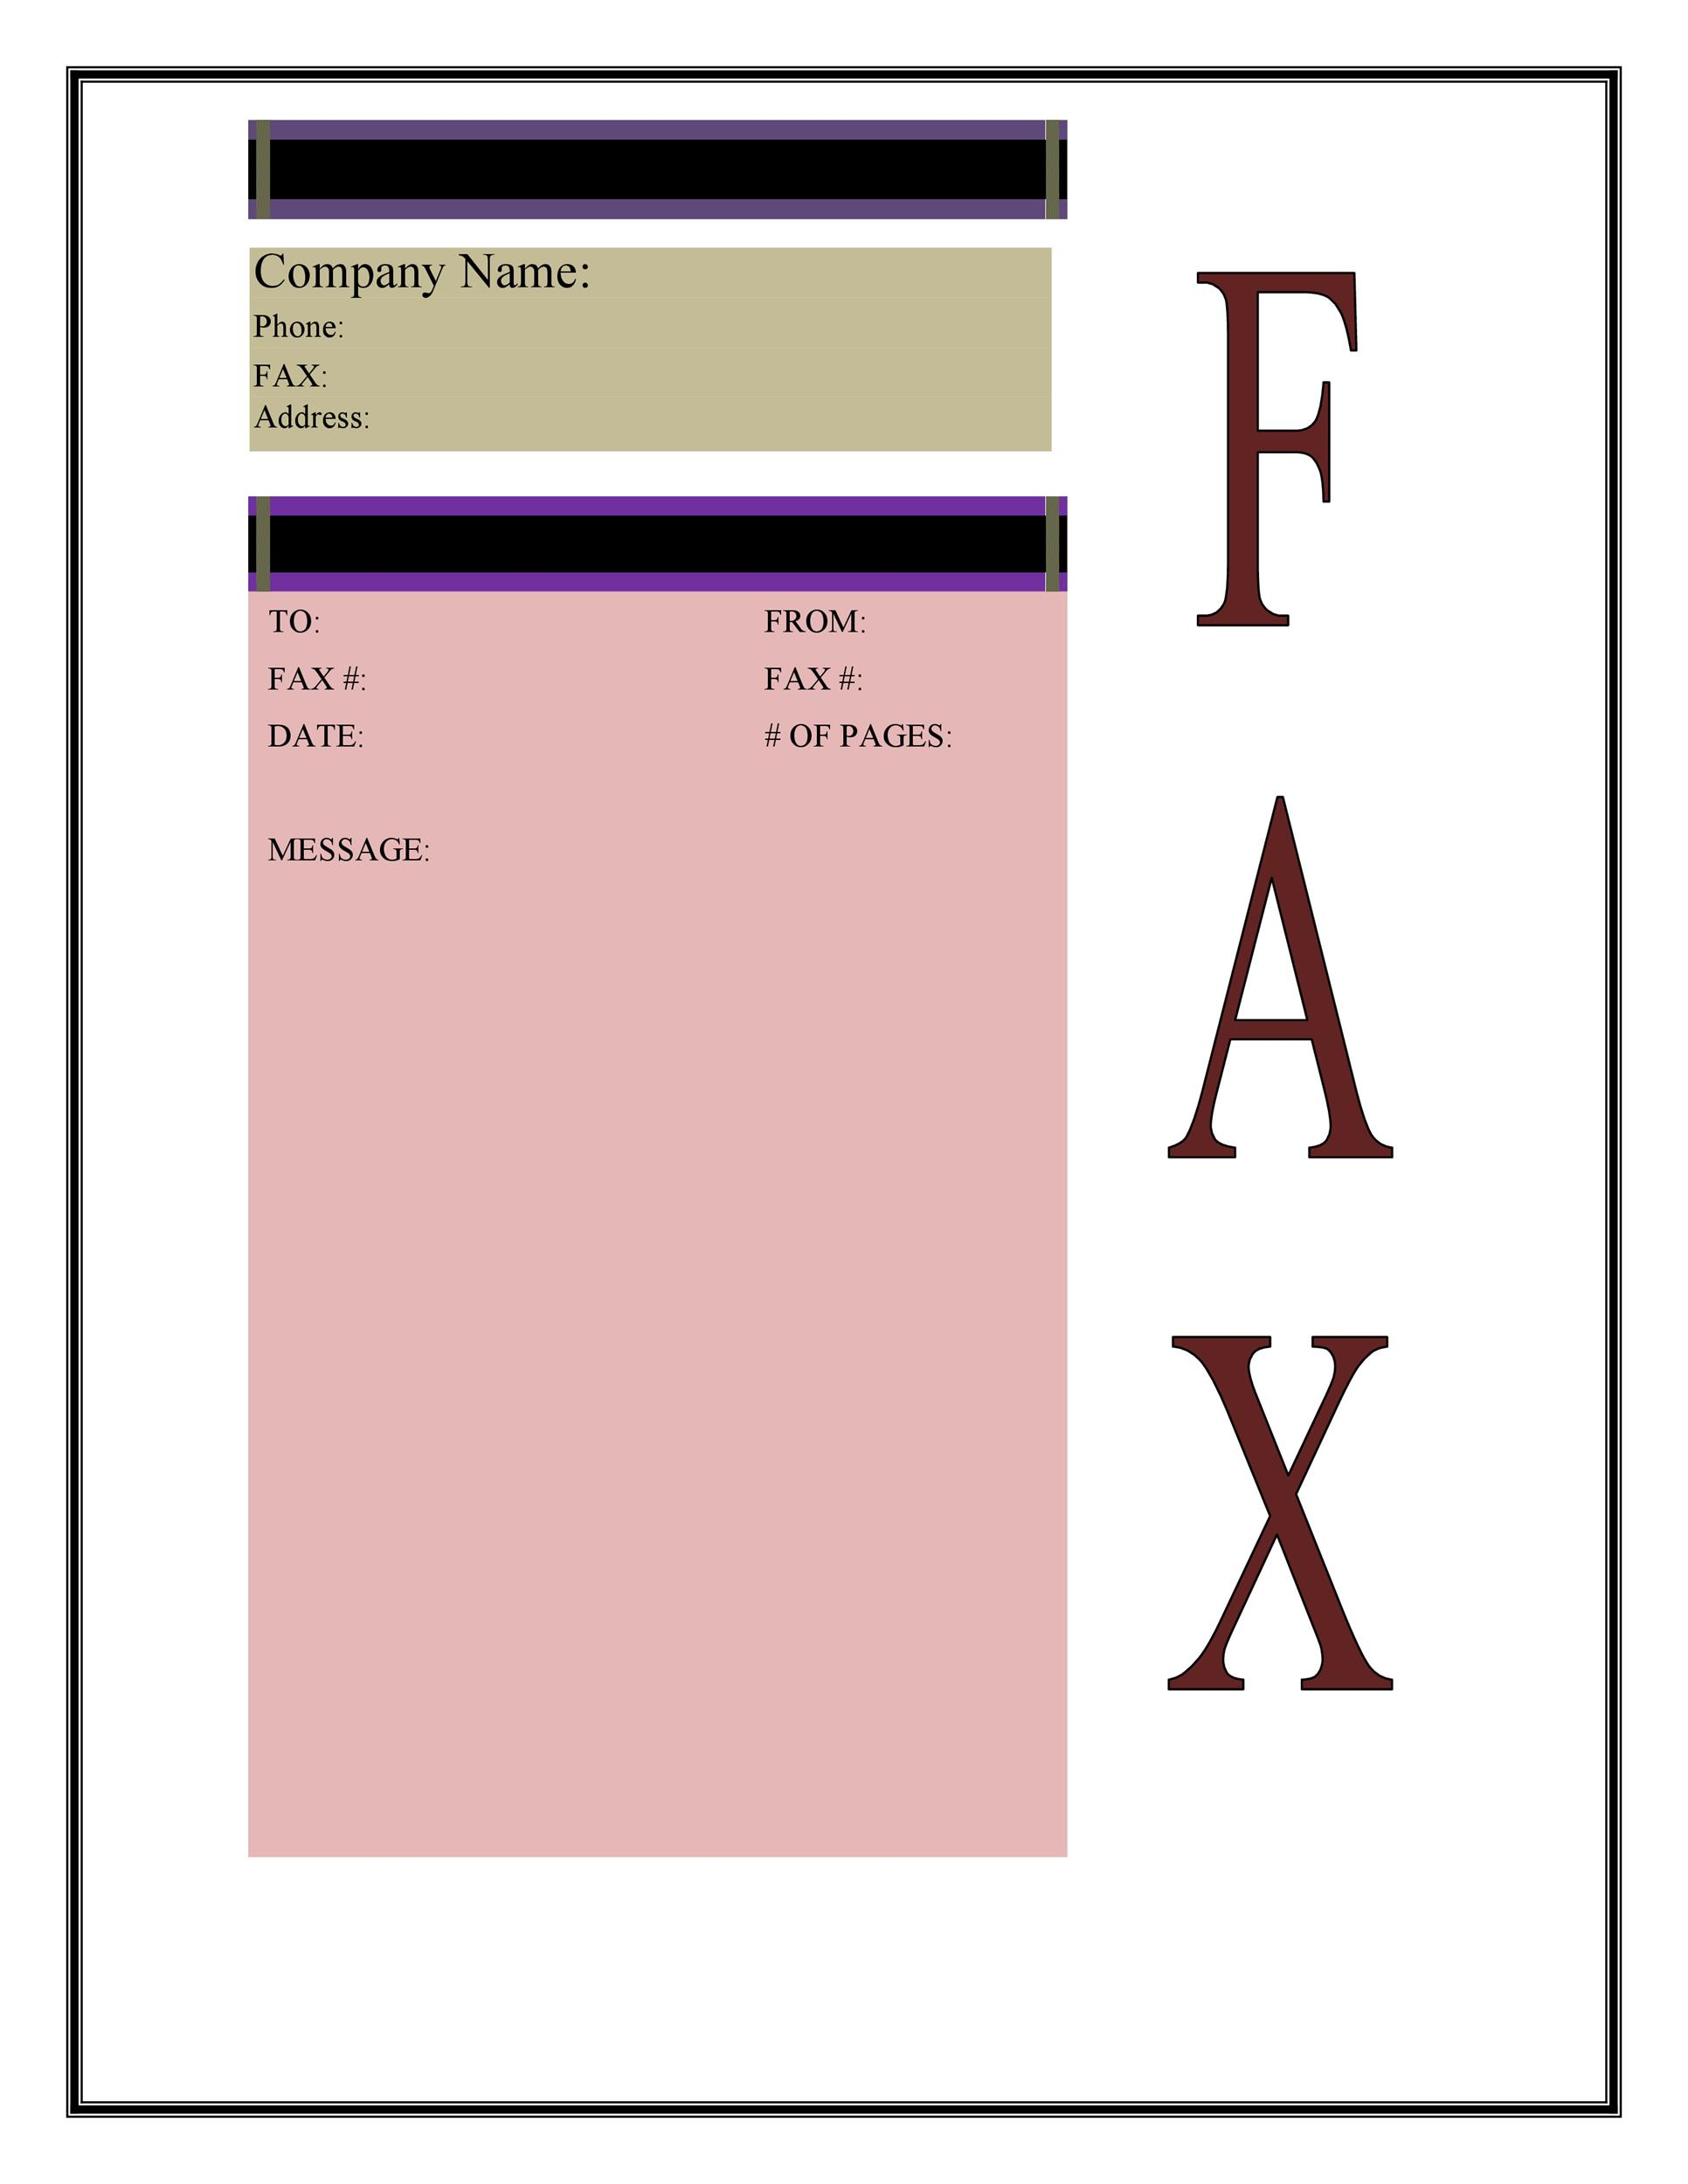 Free Fax Cover sheet Template 27